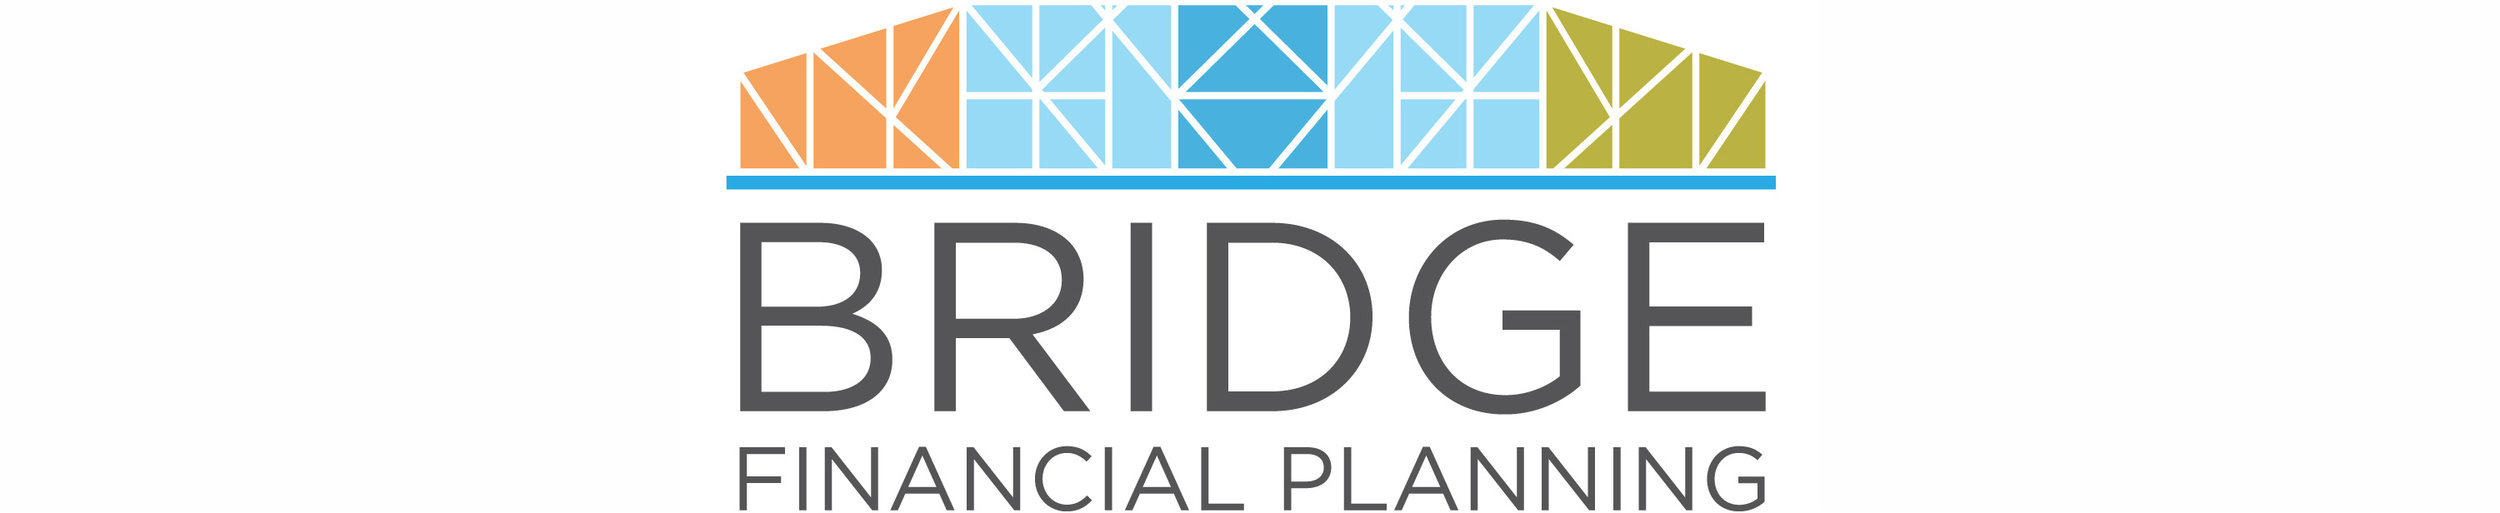 BRIDGE_FINANCIAL_PLANNING_CHATTANOOGA_footer.jpg